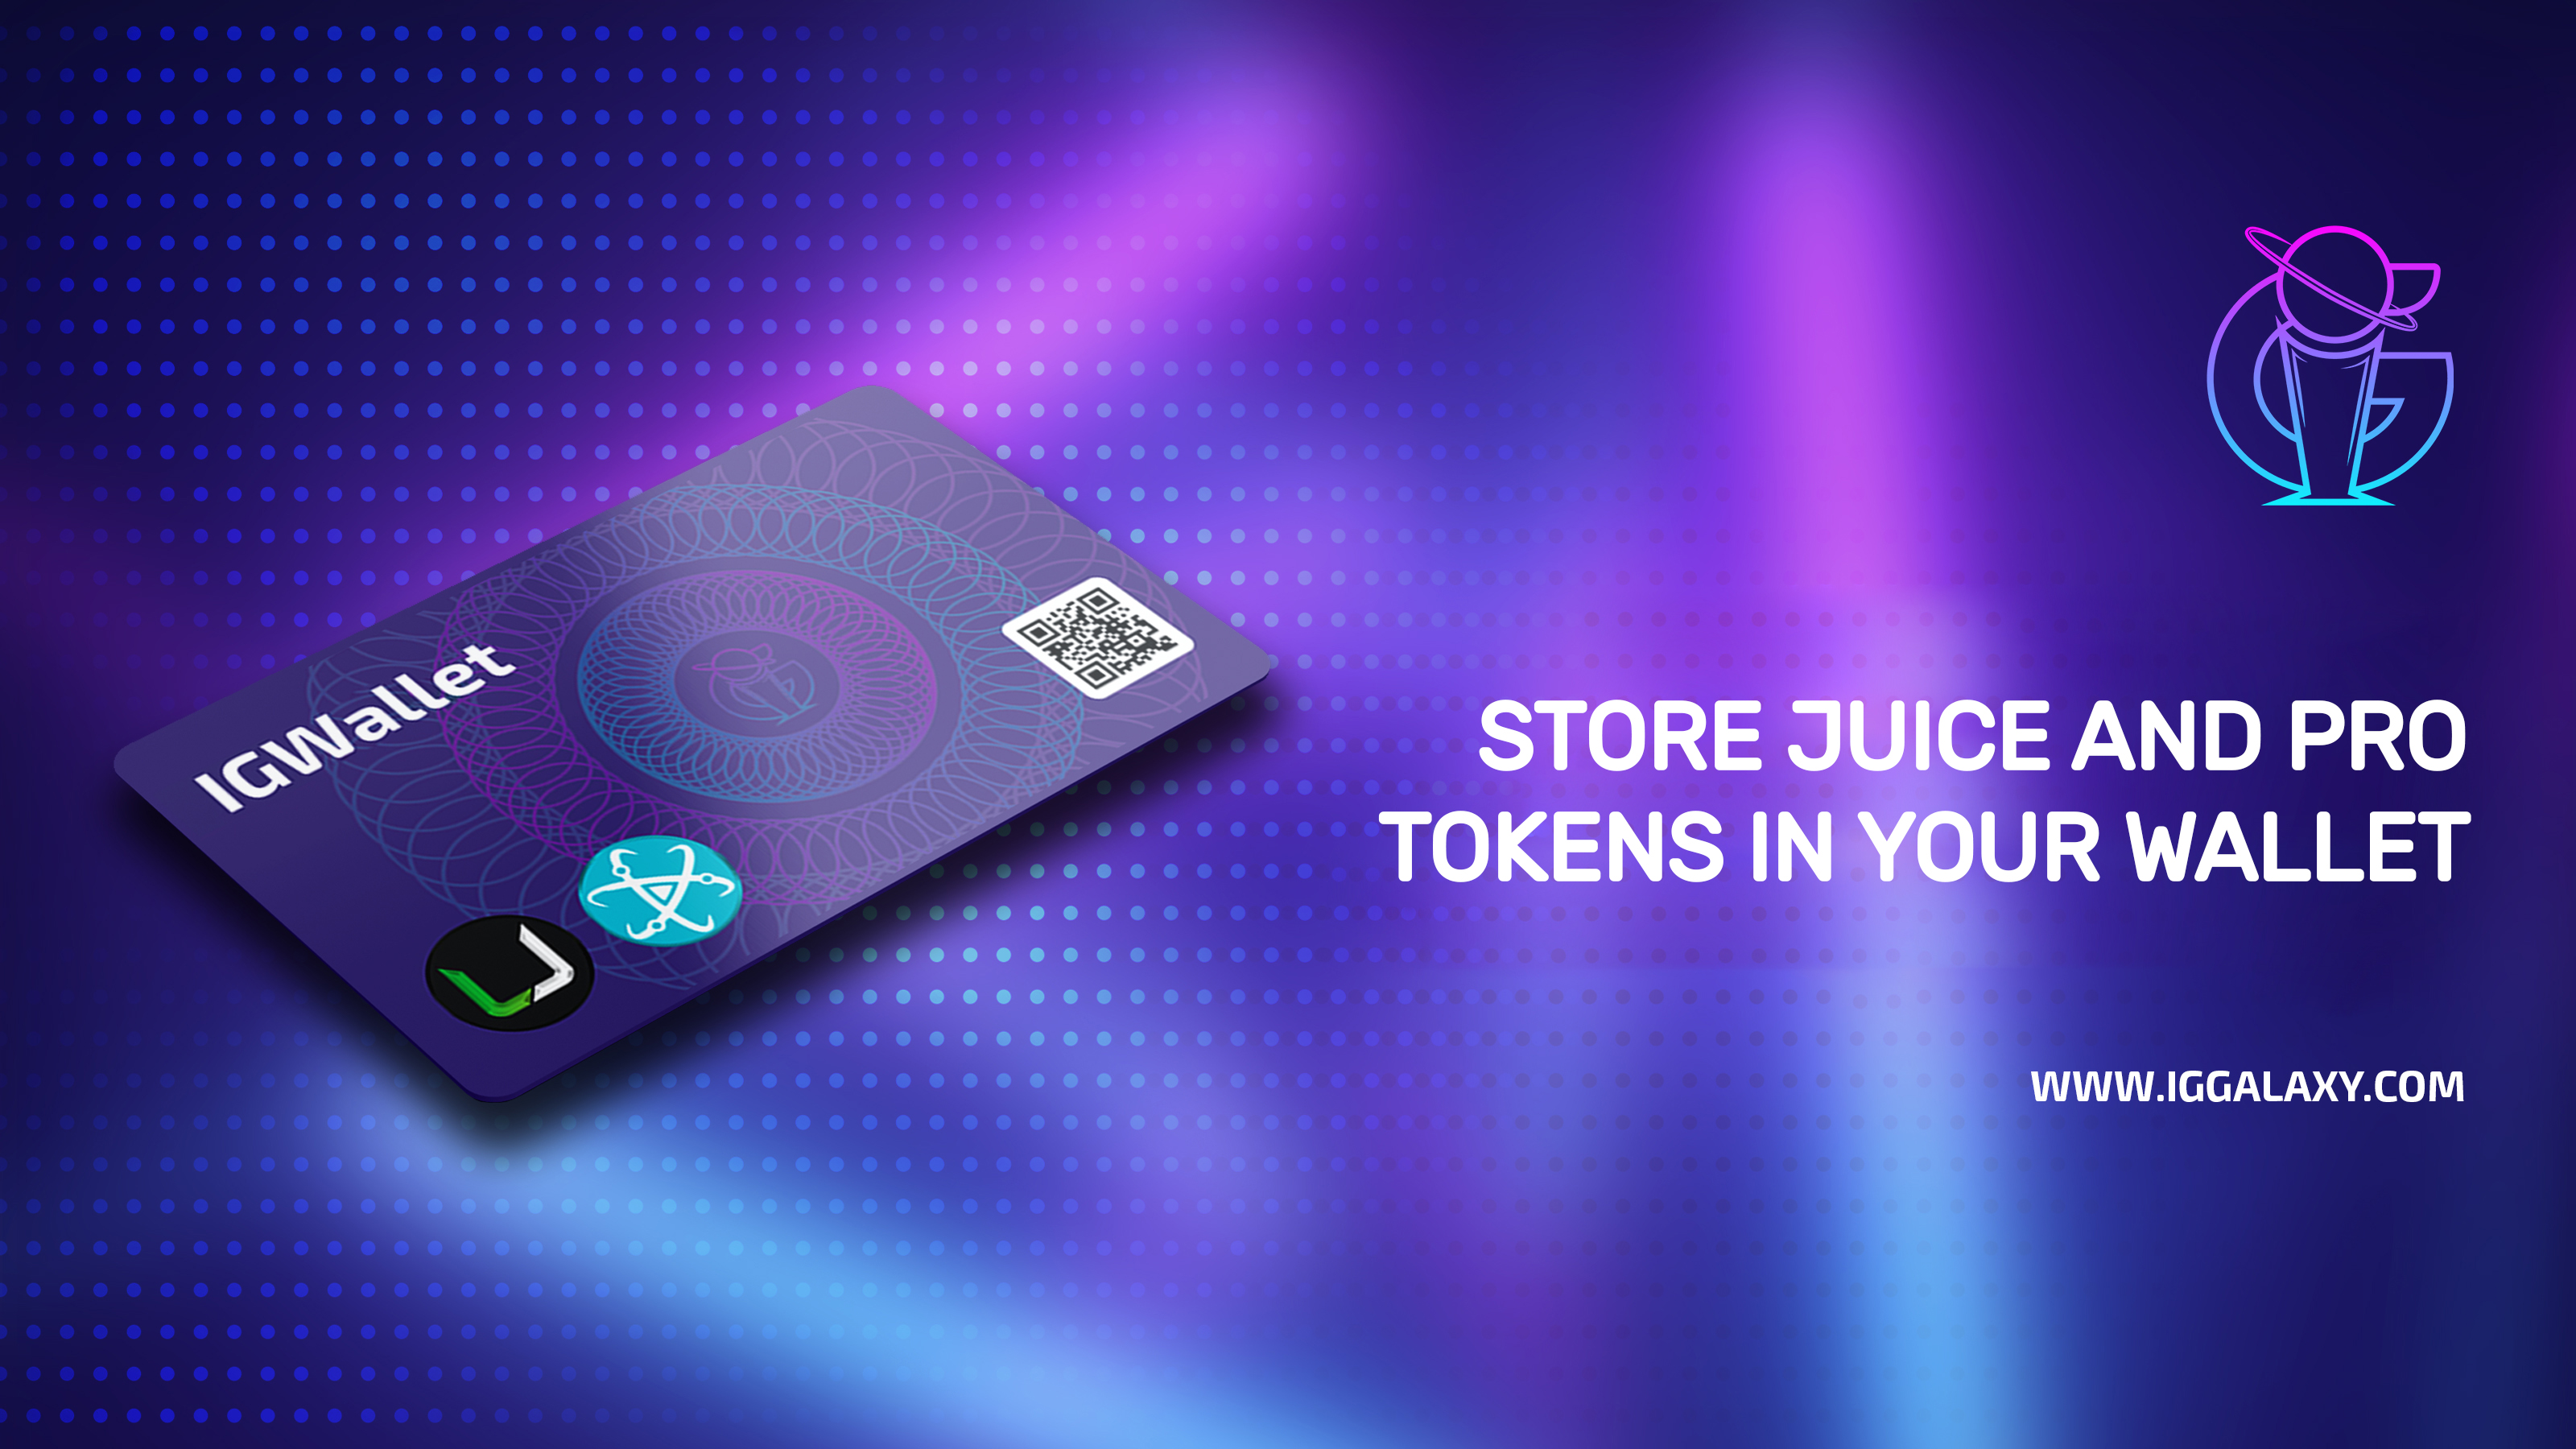 Hold, send and receive JUICE and PRO tokens in IGGalaxy!